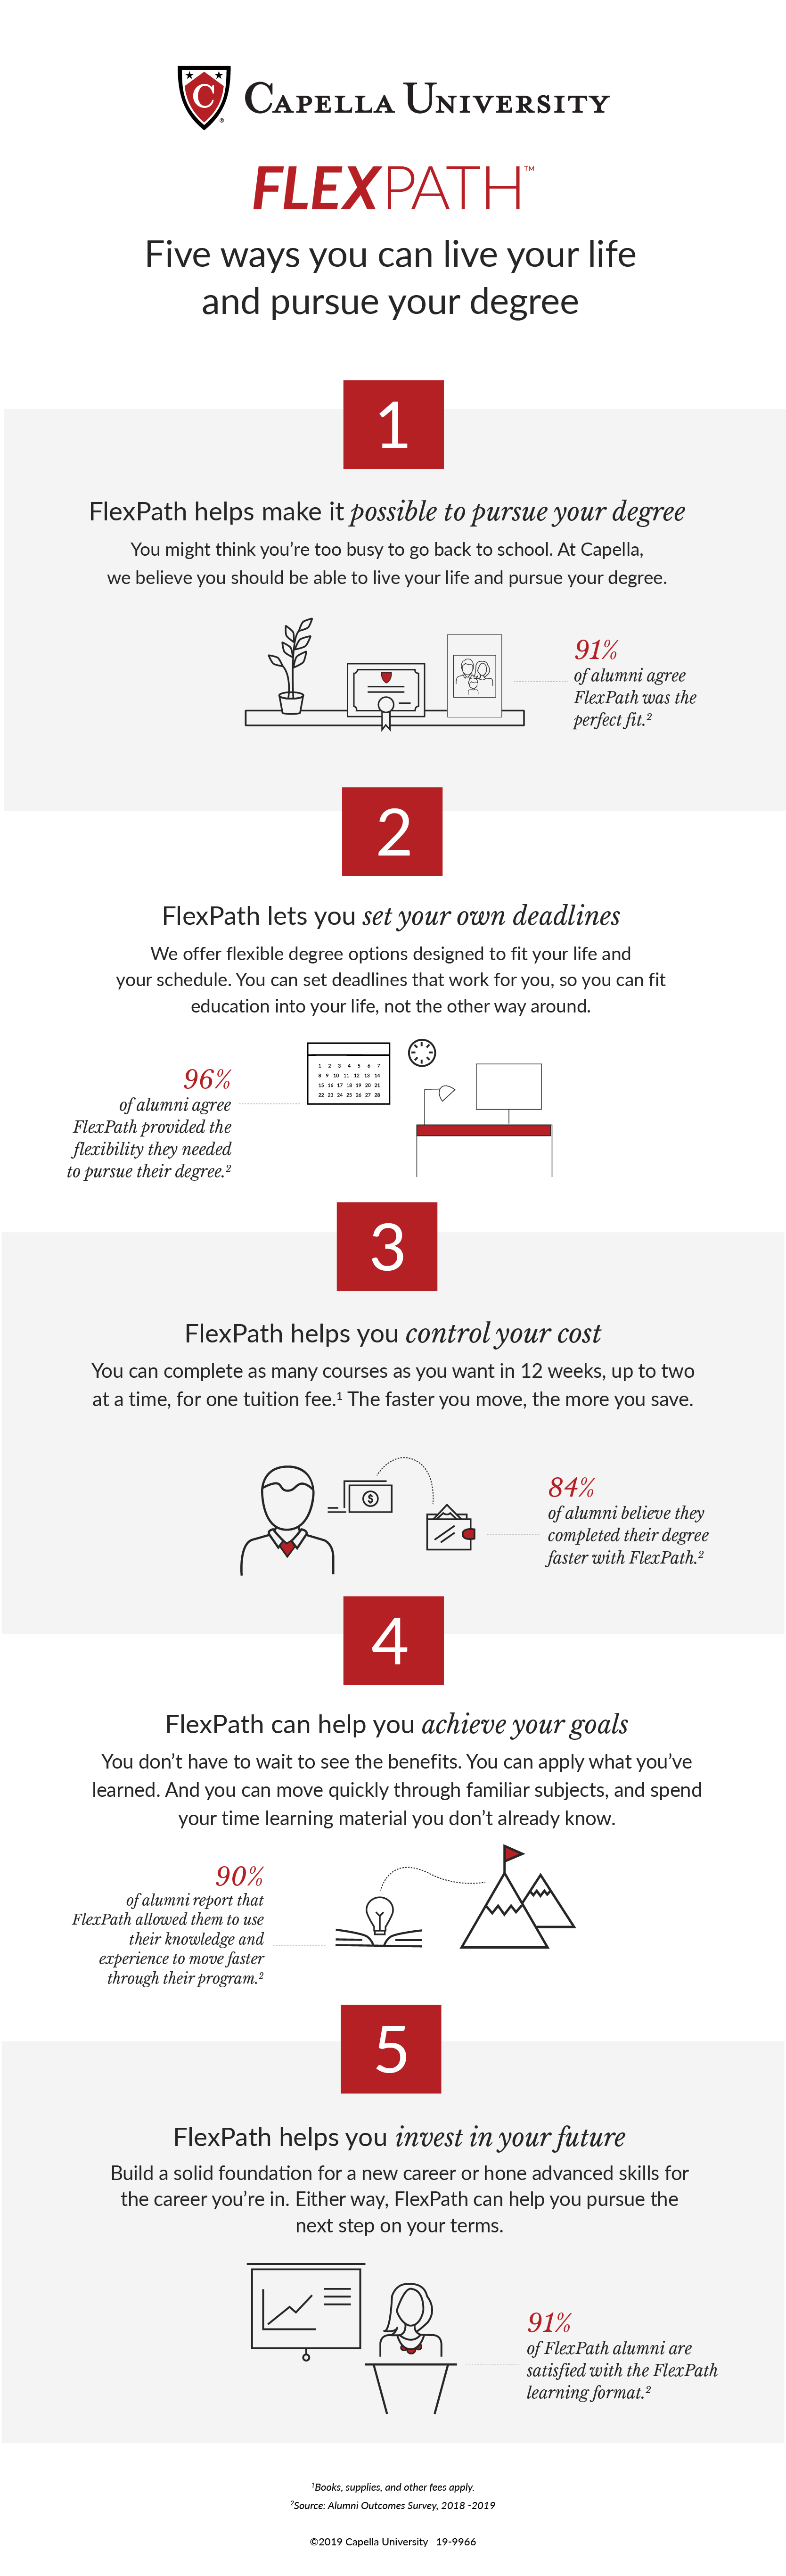 FlexPath from Capella University   Self-Paced Online Learning Format